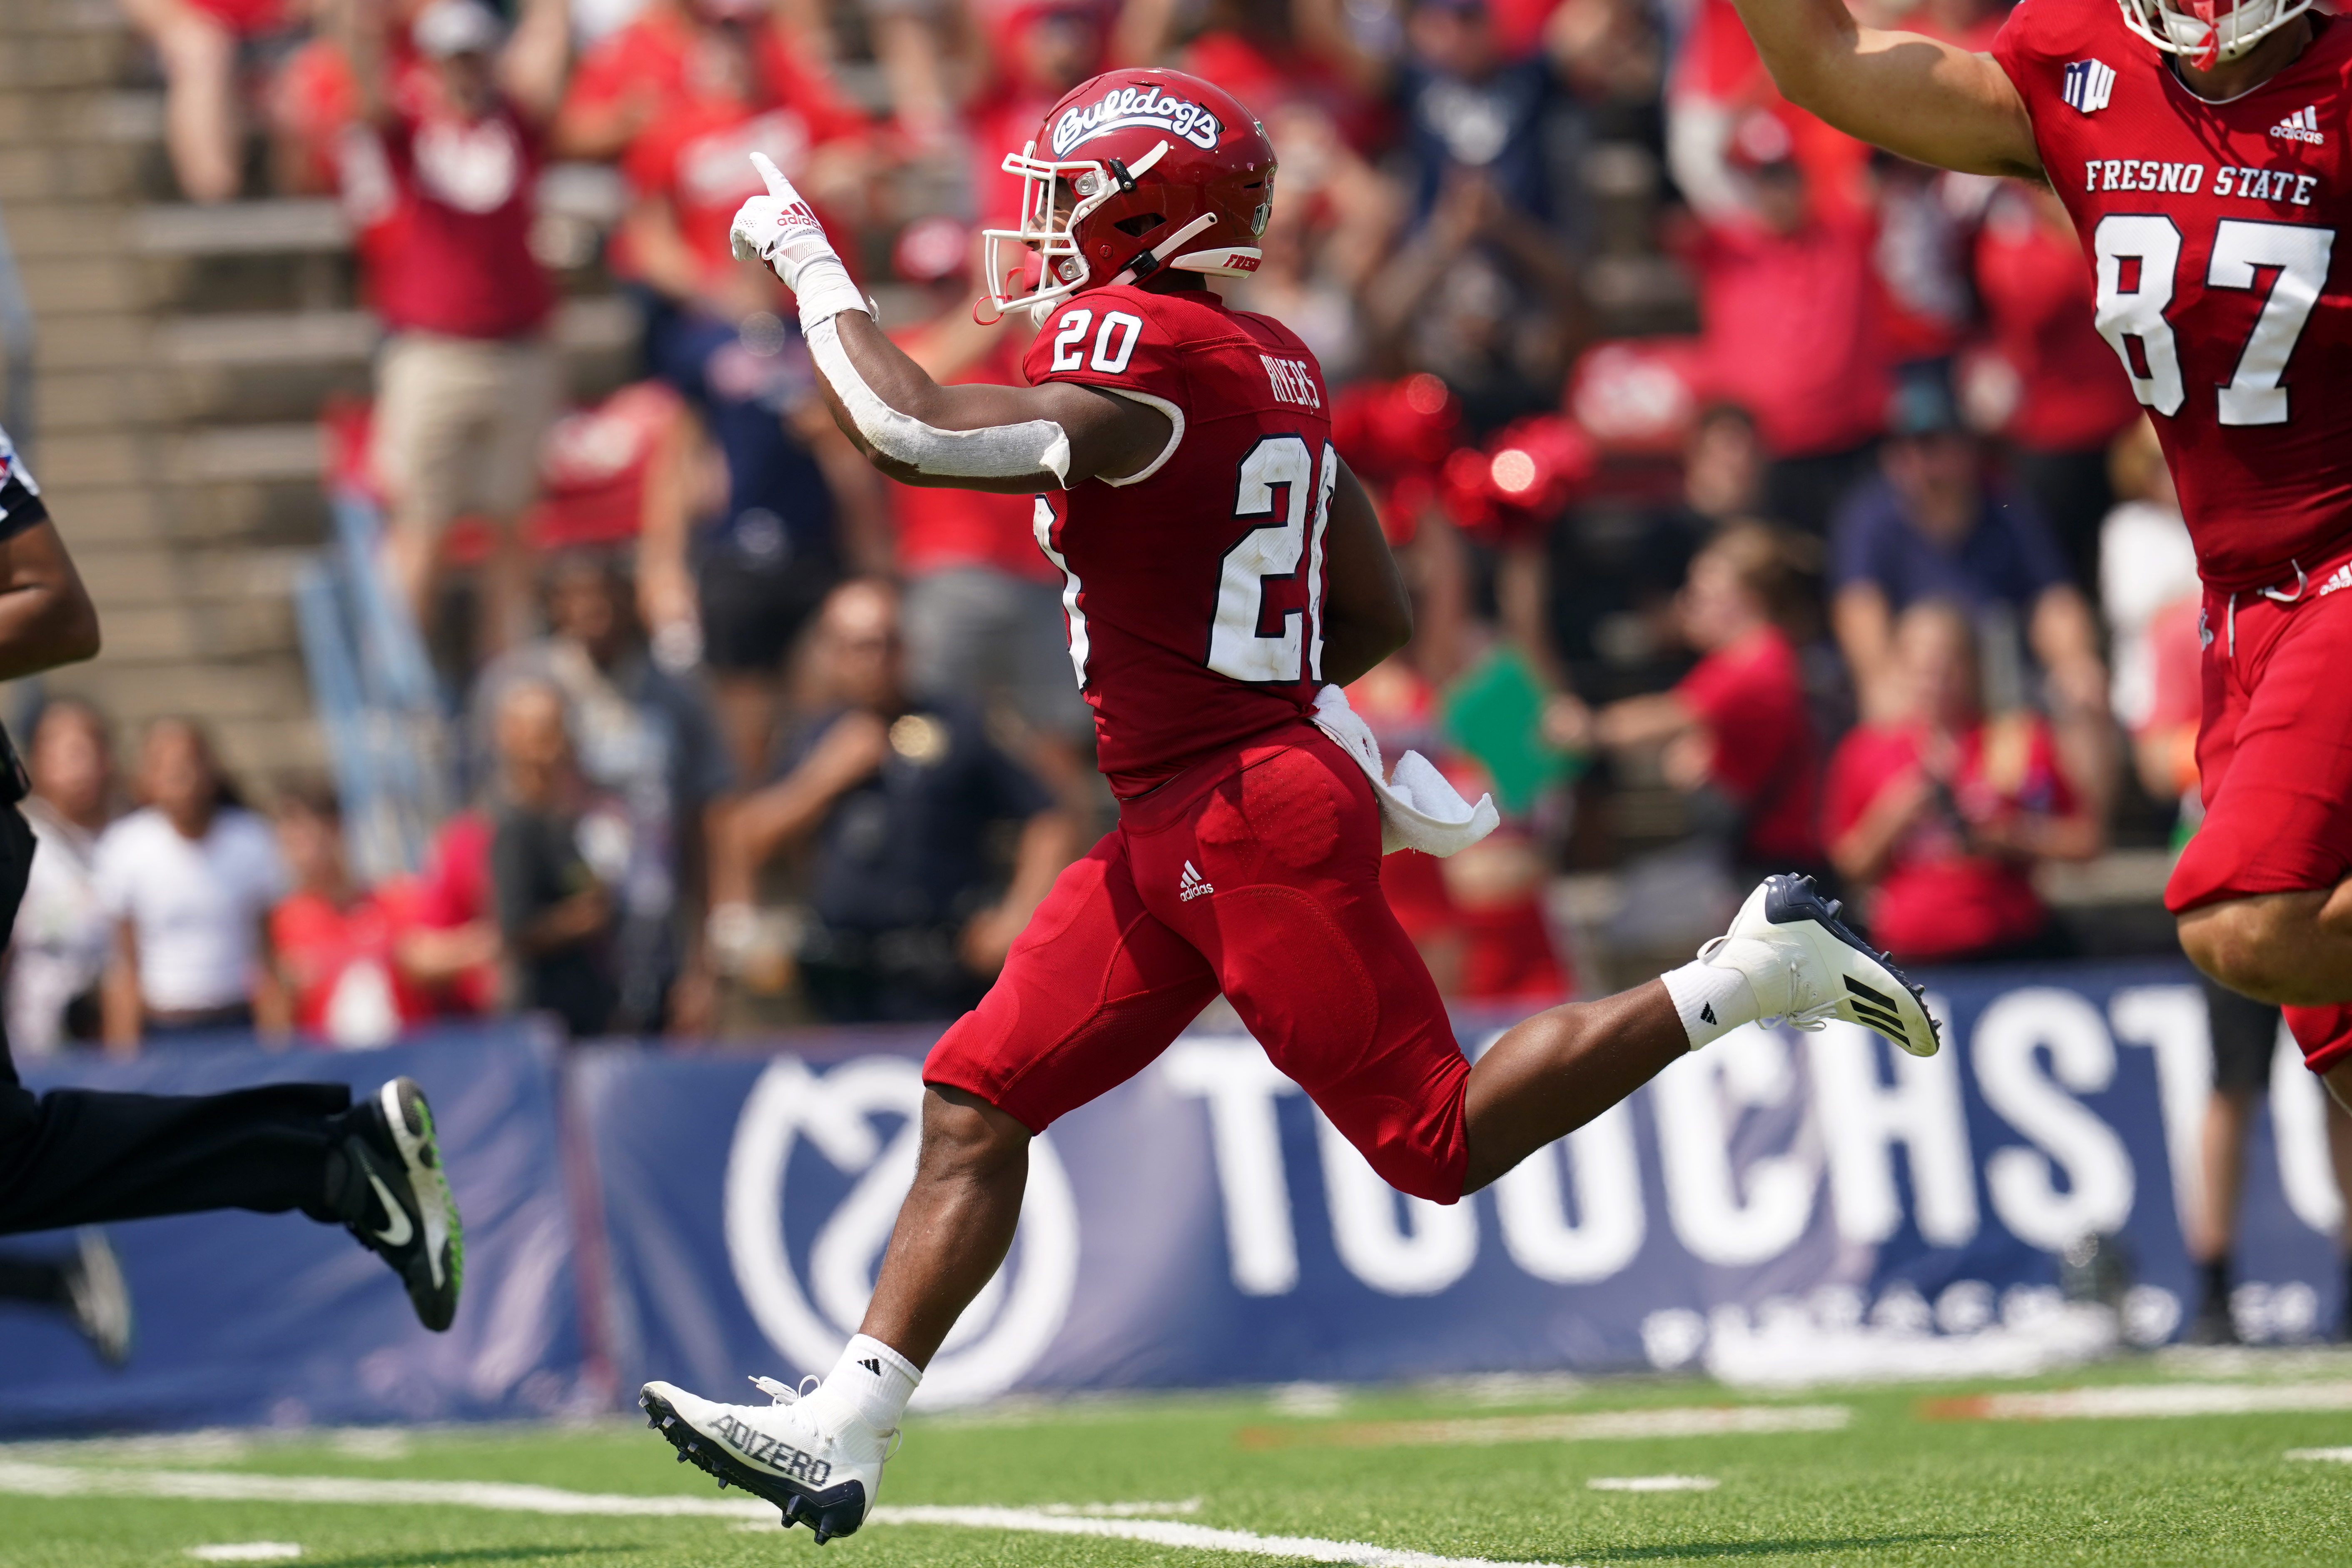 NCAA Football: Connecticut at Fresno State